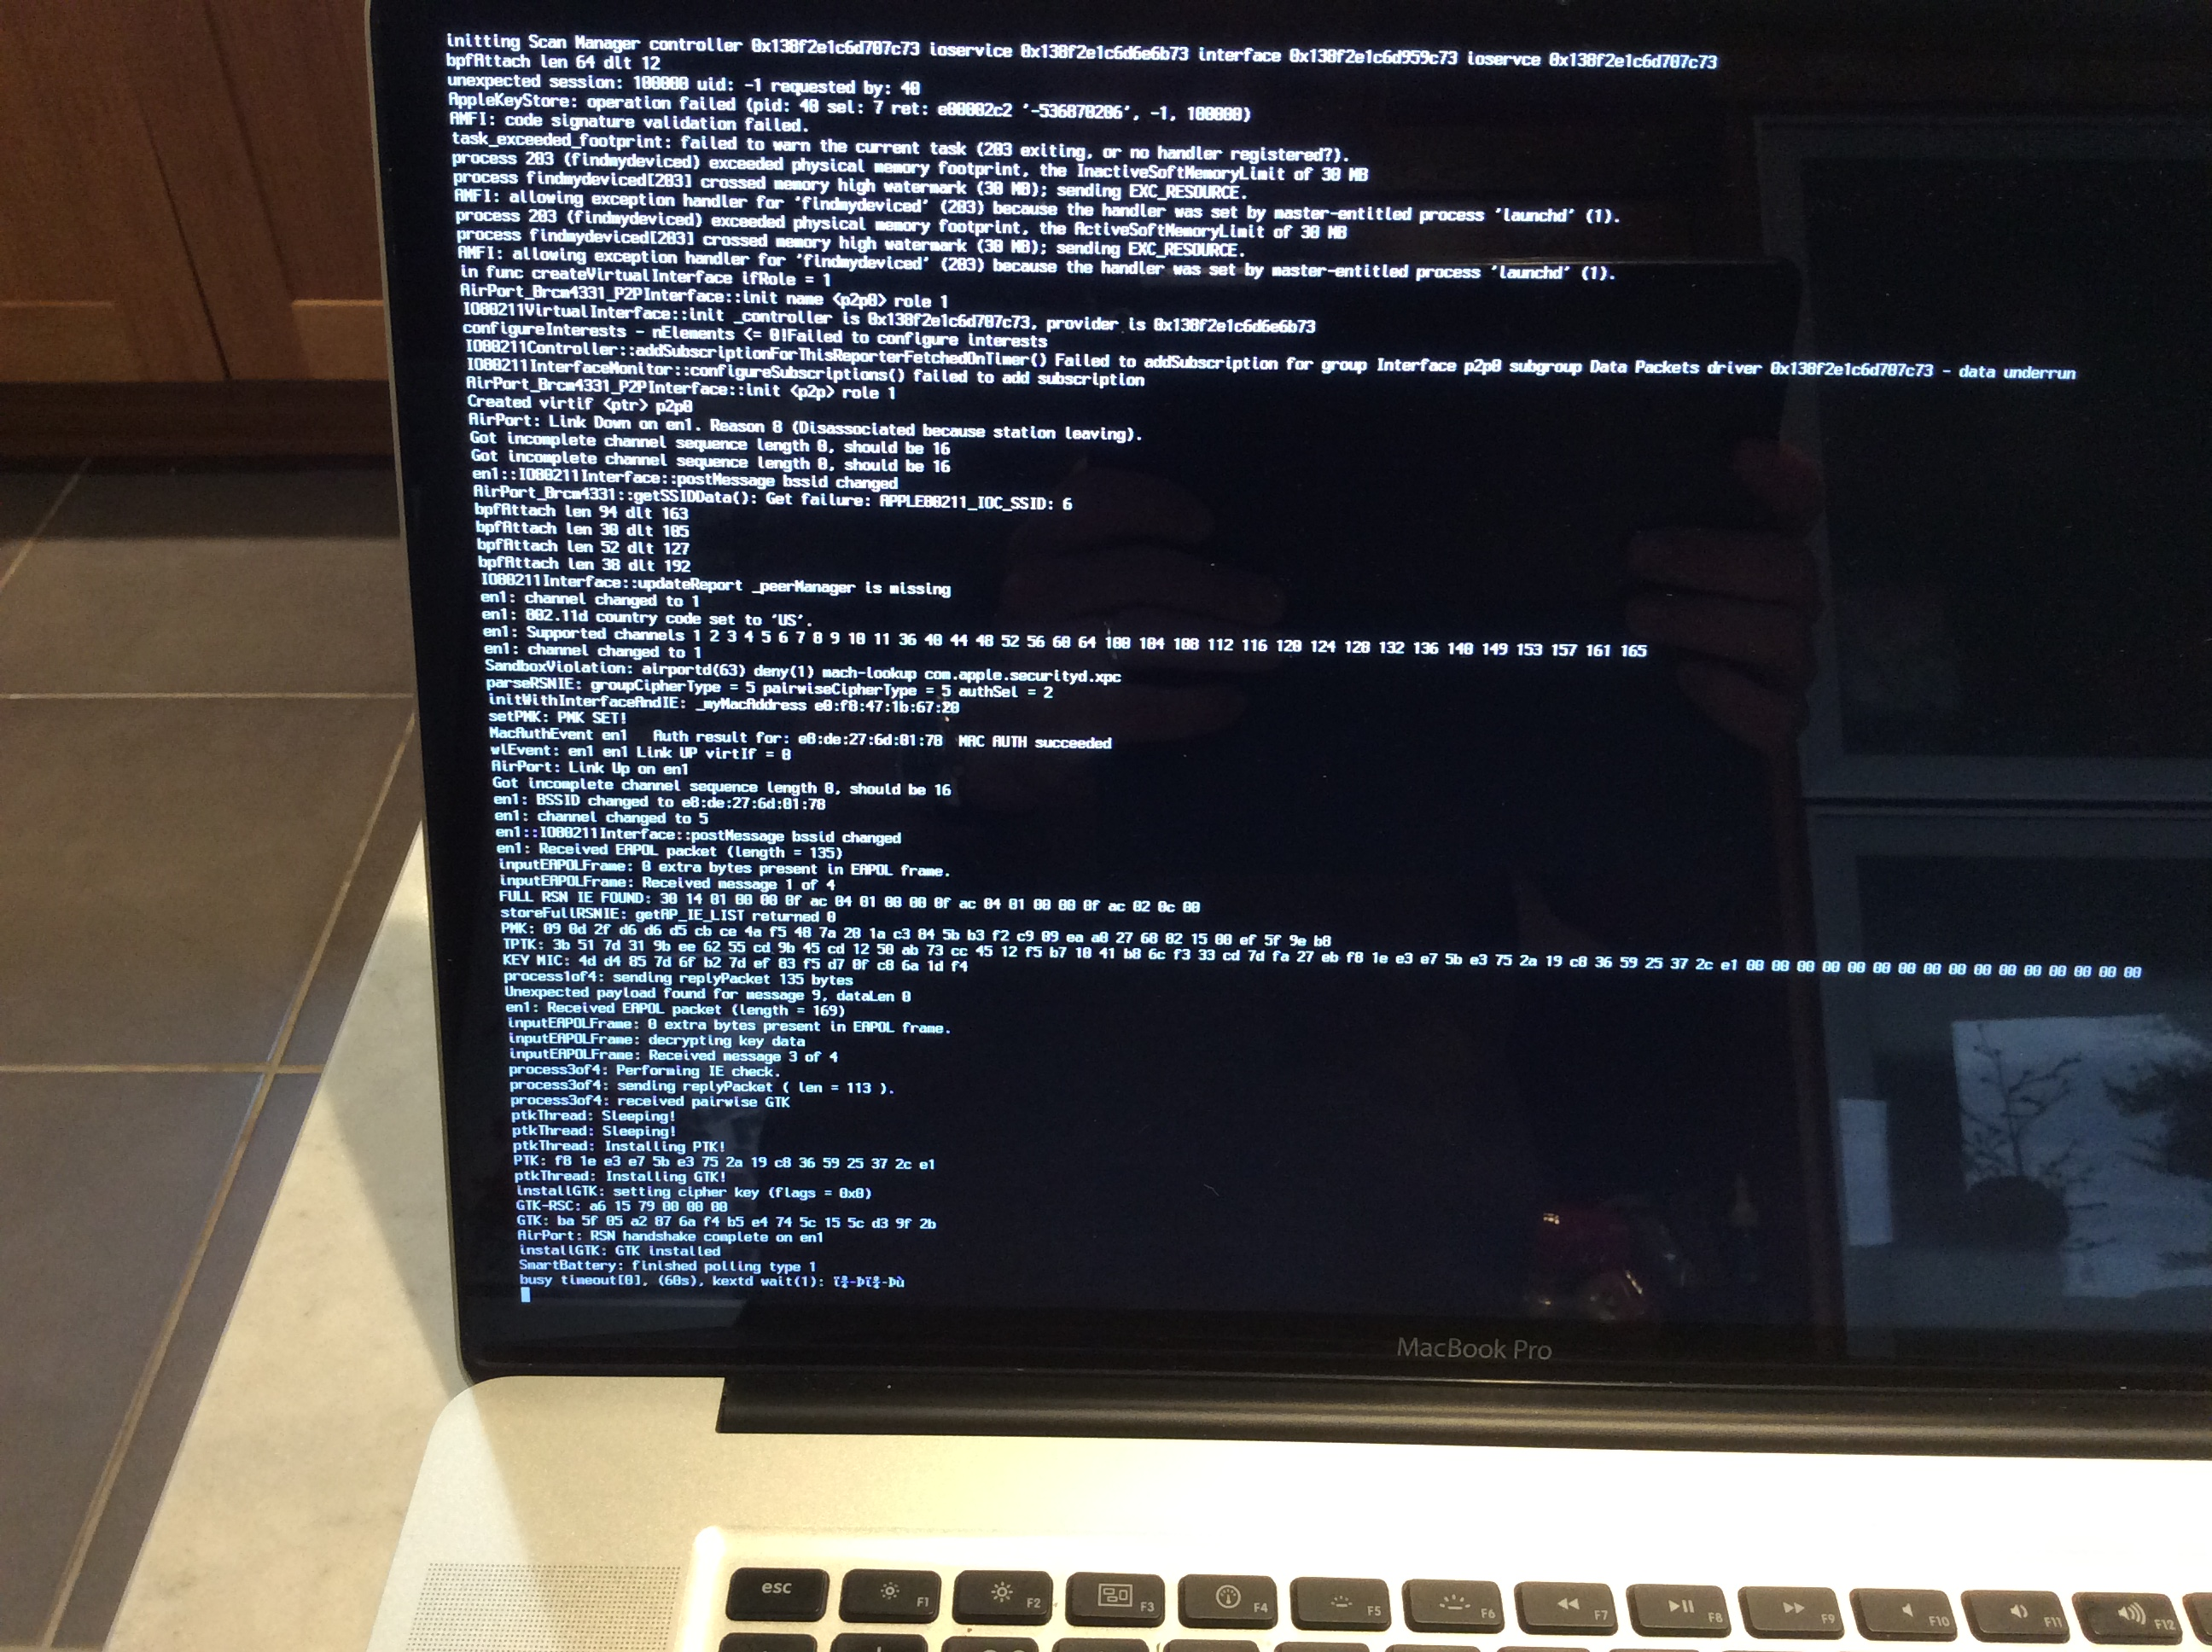 MacBook7,1 will not boot after updating f… - Apple Community